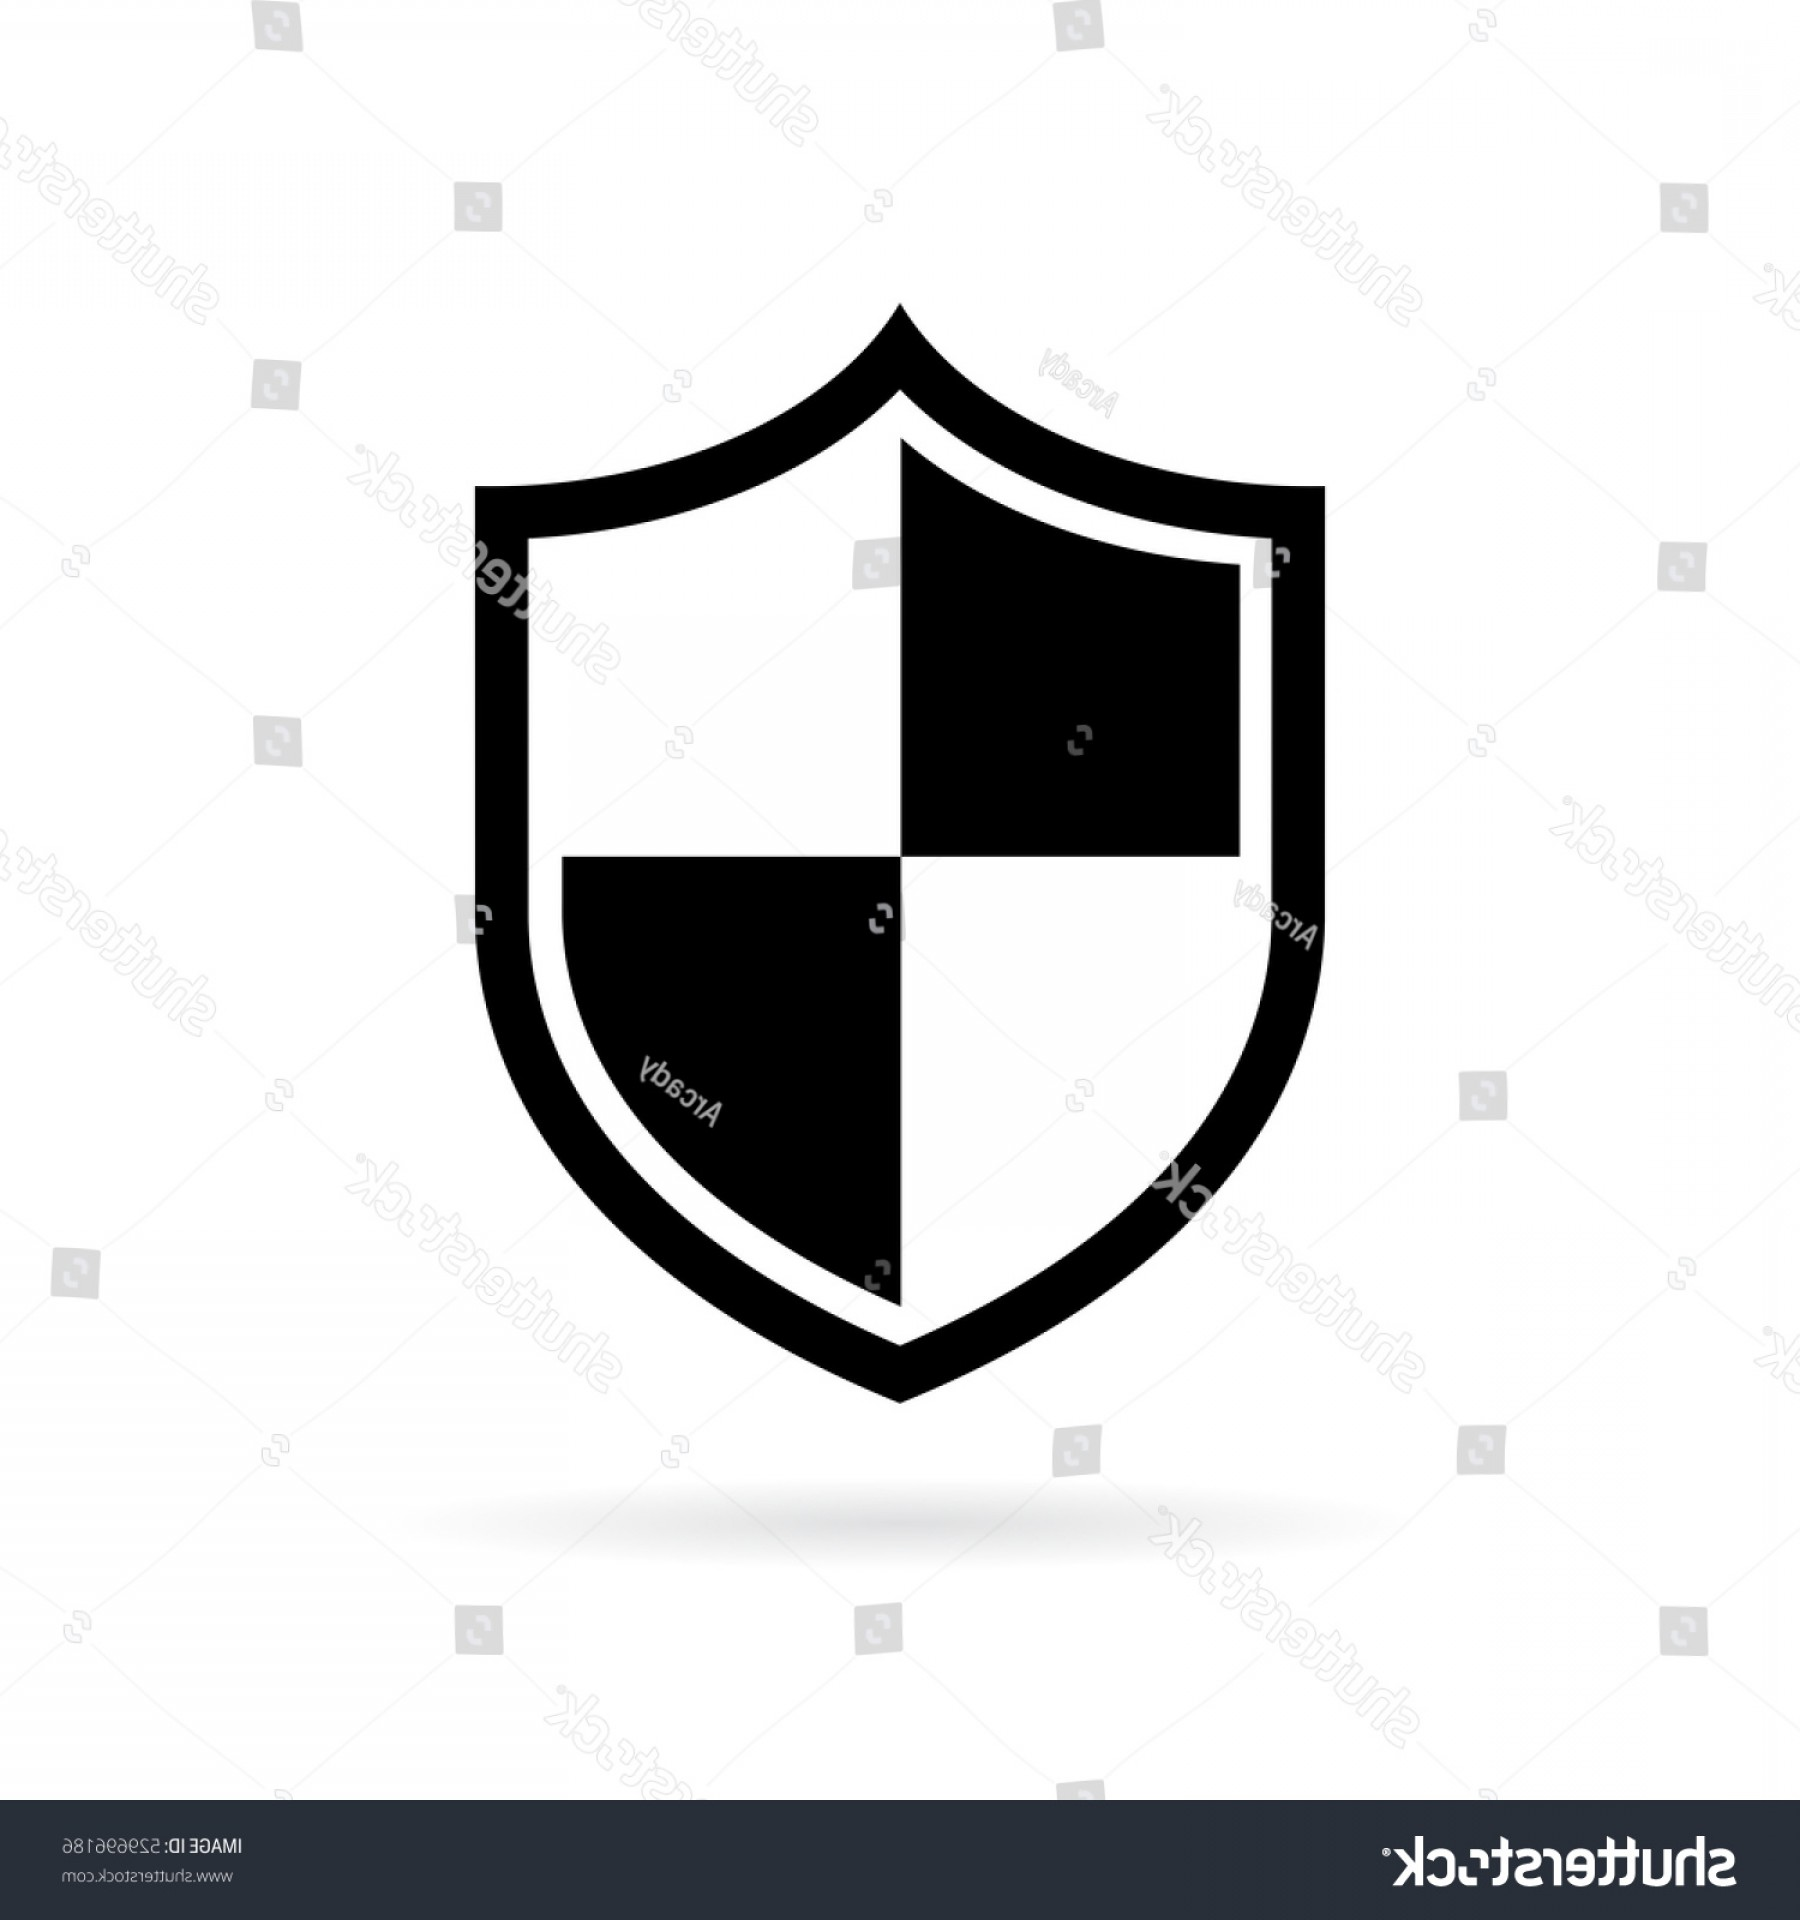 White Shield Vector: Shield Vector Secure Pictogram Illustration Isolated